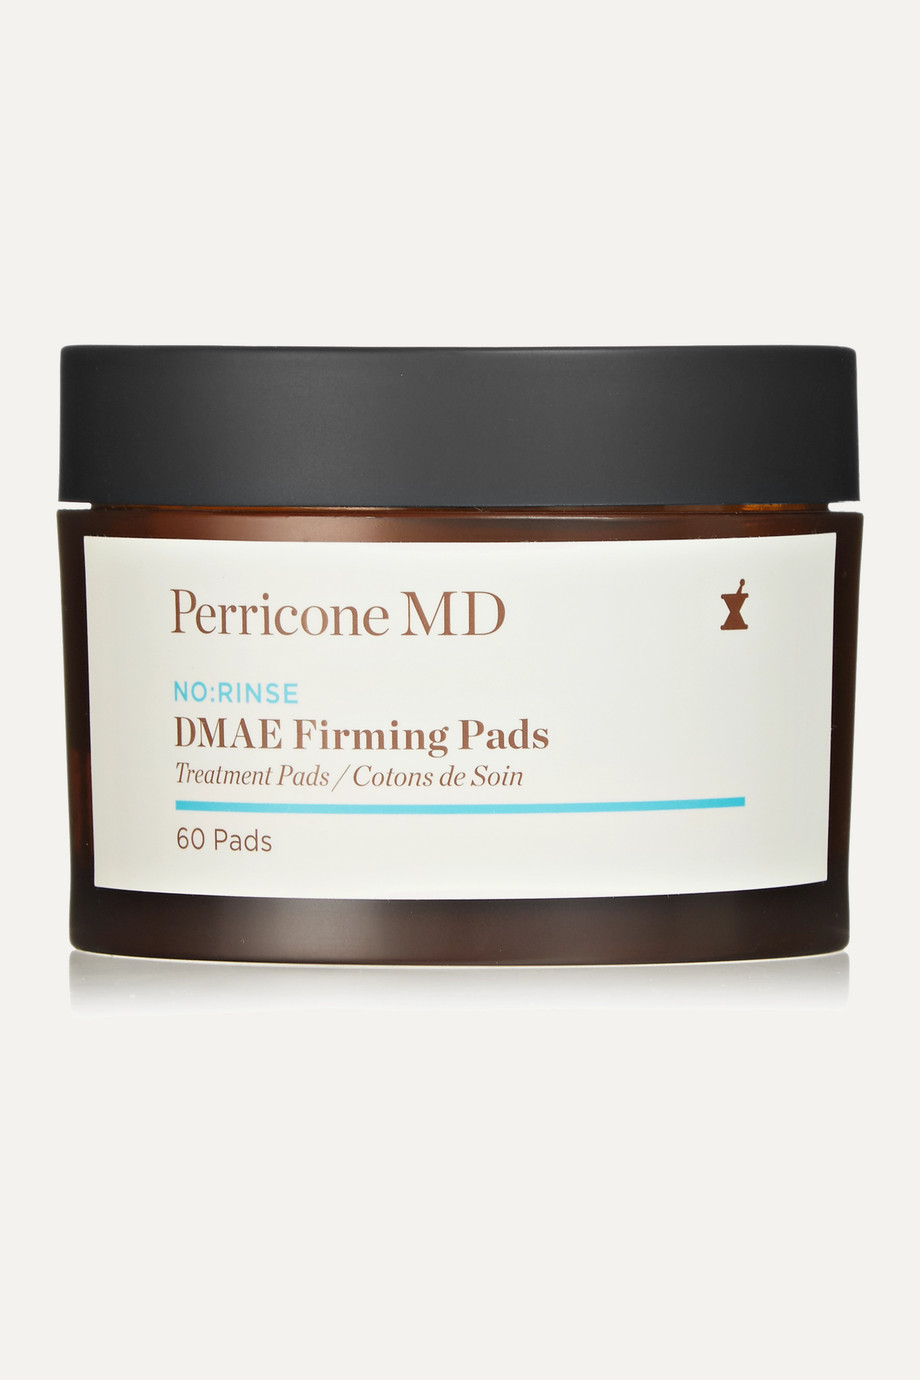 Perricone MD No:Rinse DMAE Firming Pads - 60 Pads